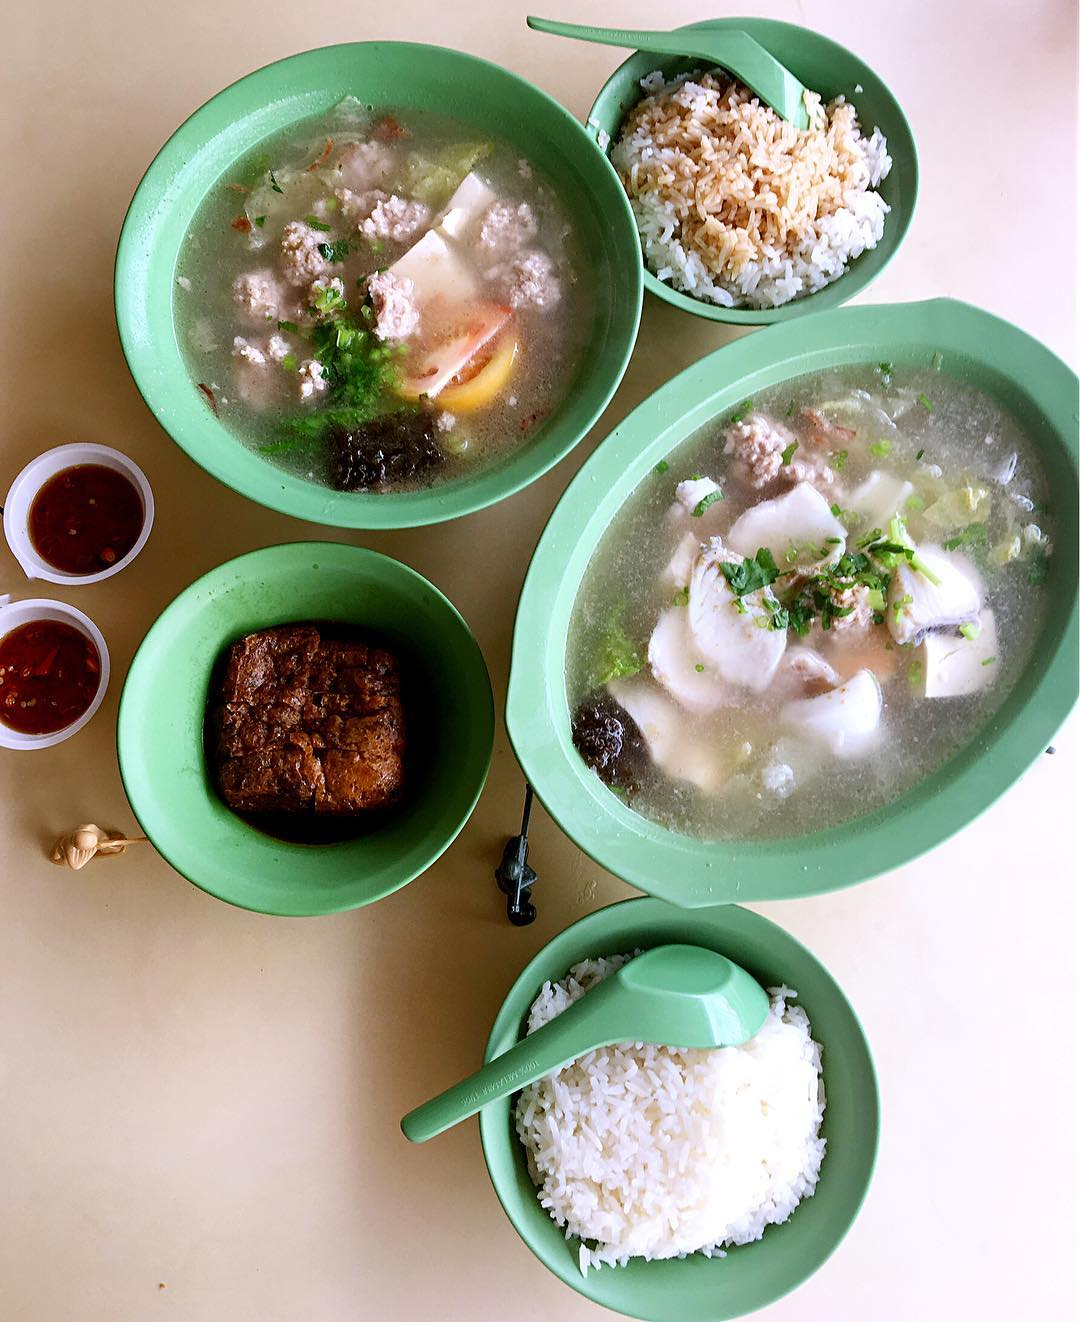 amoy street food centre- han kee fish soup